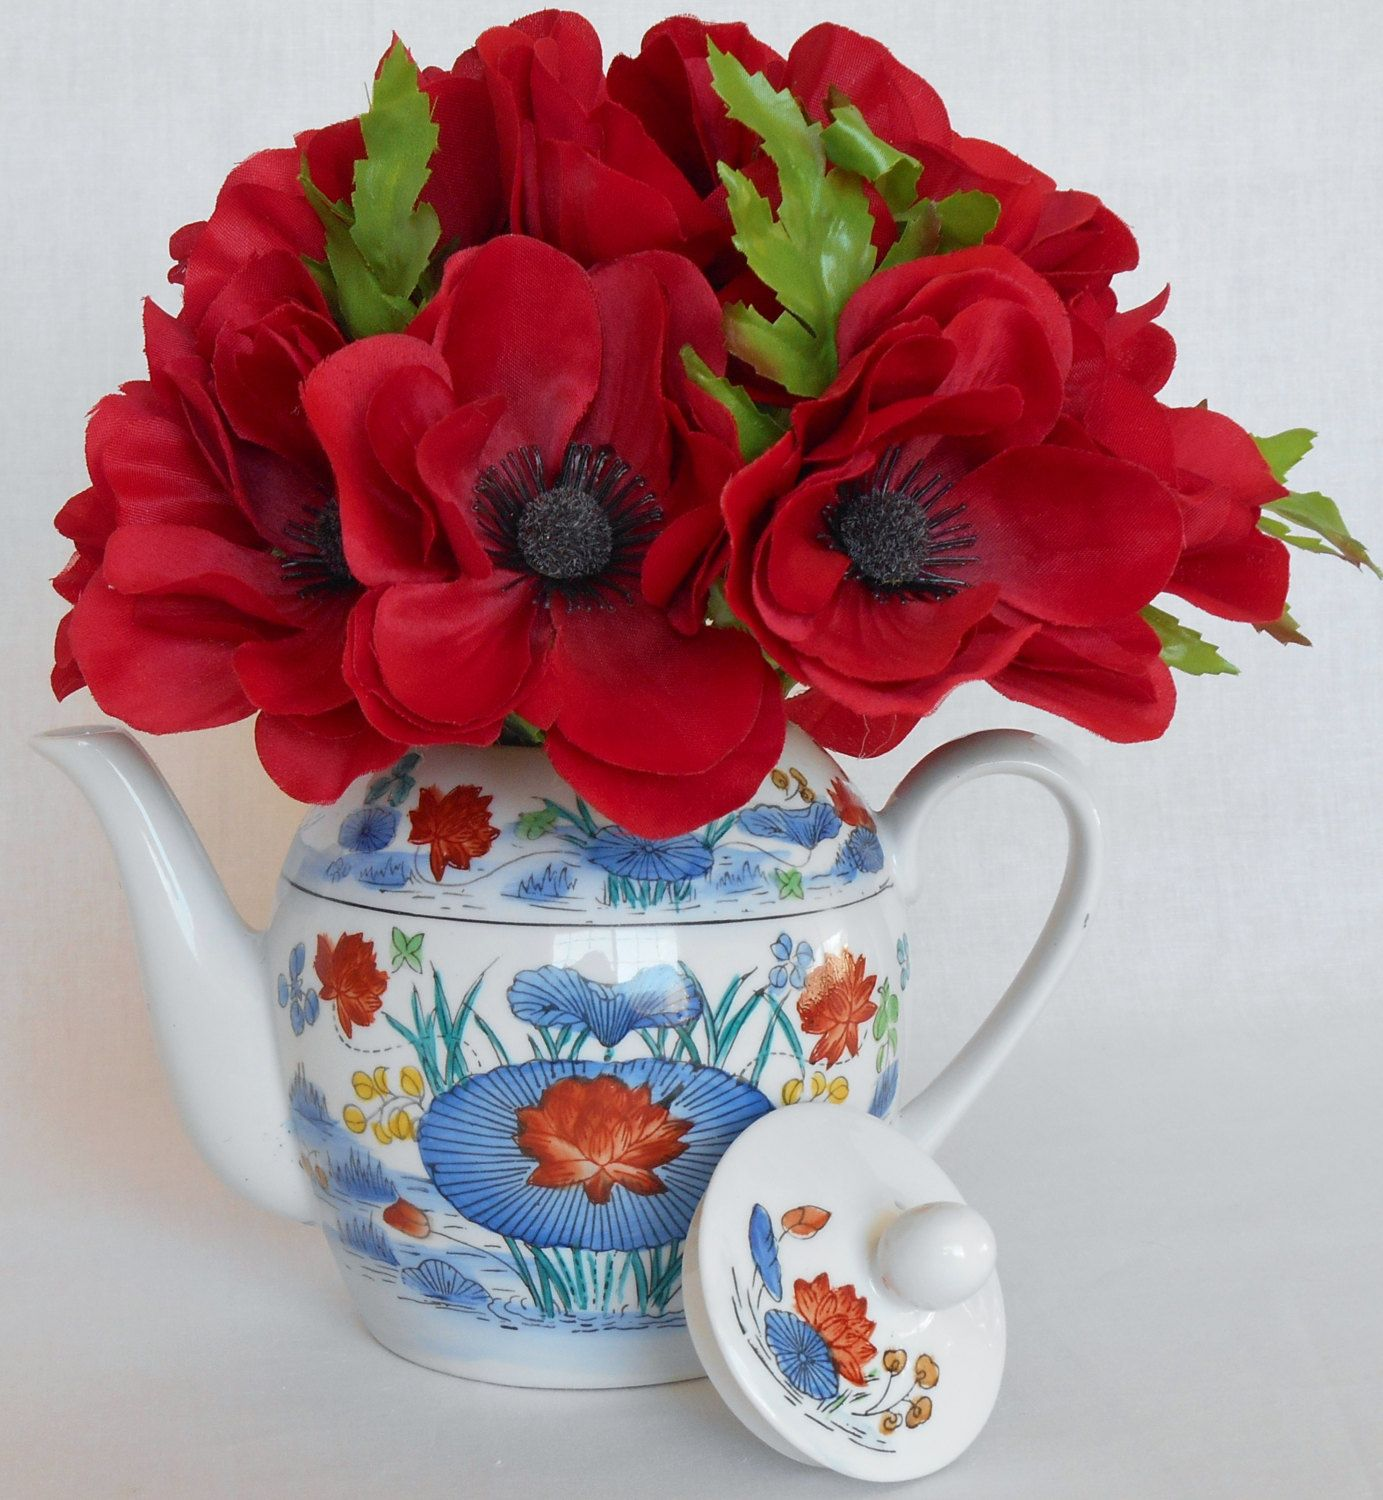 Teapot silk flower arrangement bright red poppies floral oriental teapot silk flower arrangement bright red poppies floral oriental teapot artificial flower arrangement mightylinksfo